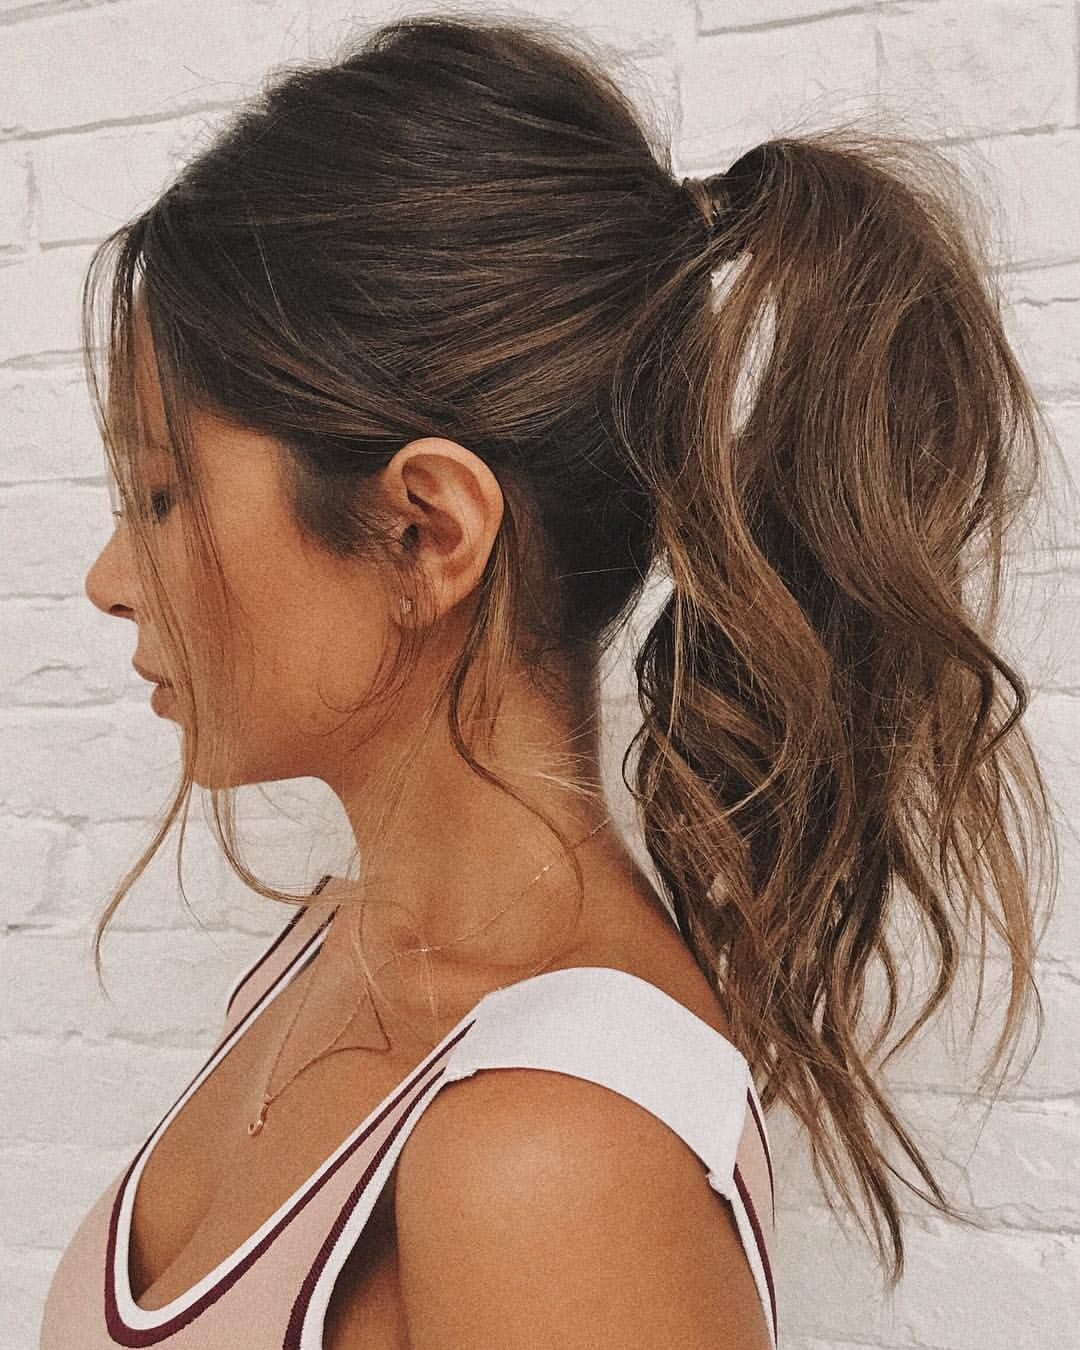 High Pony Ponytail Hairstyle Highpony Curls Mariannahewitt High Ponytail Hairstyles Hair Styles Tail Hairstyle